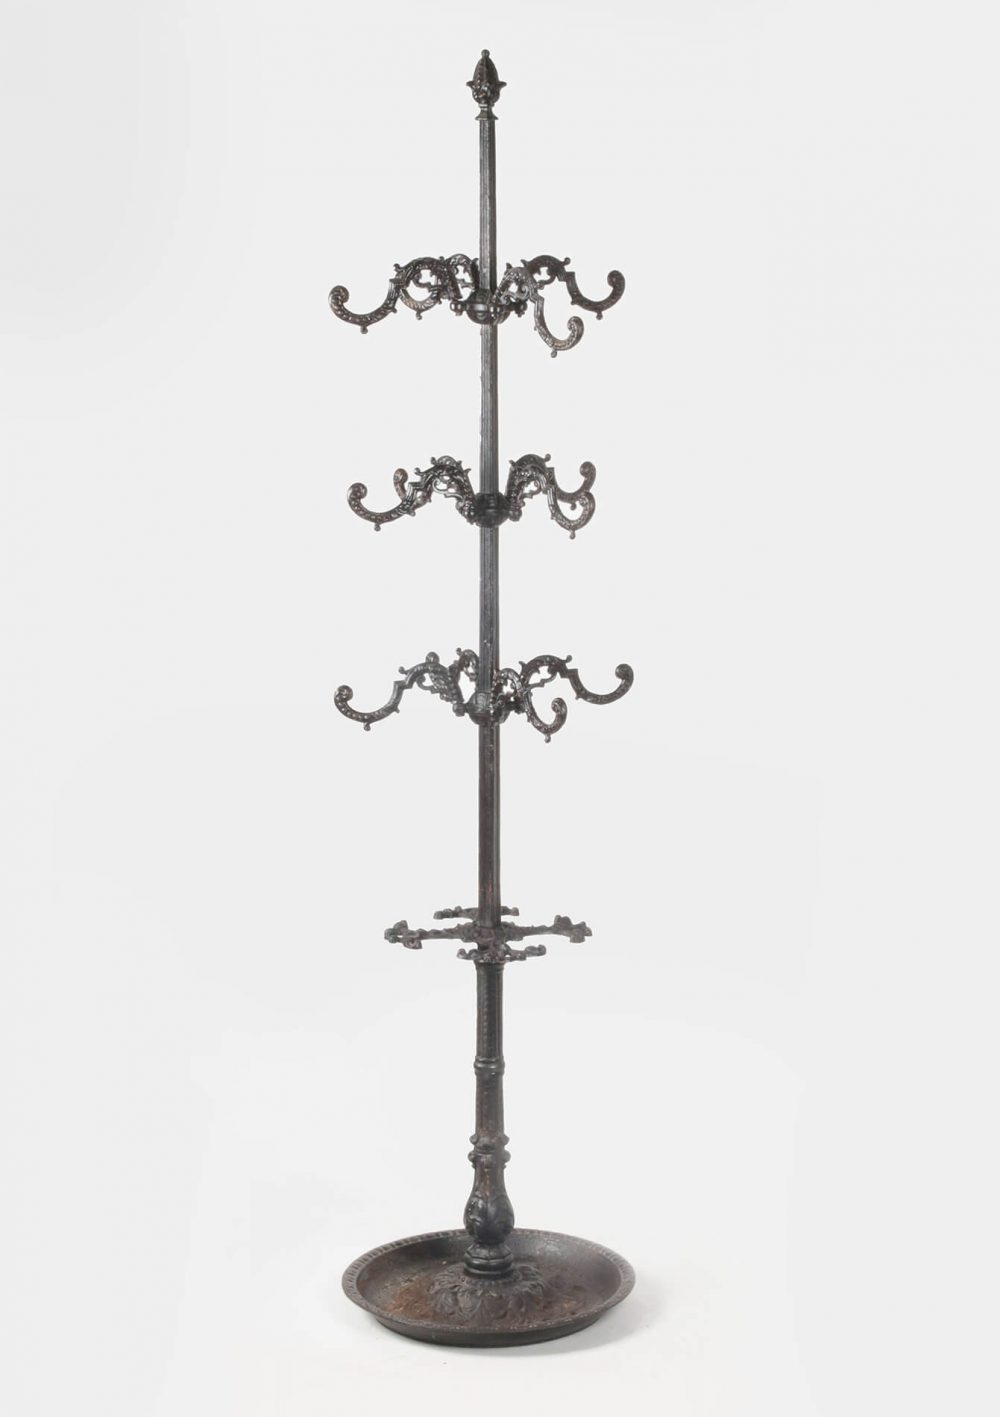 Antique cast iron coatrack with umbrella stand